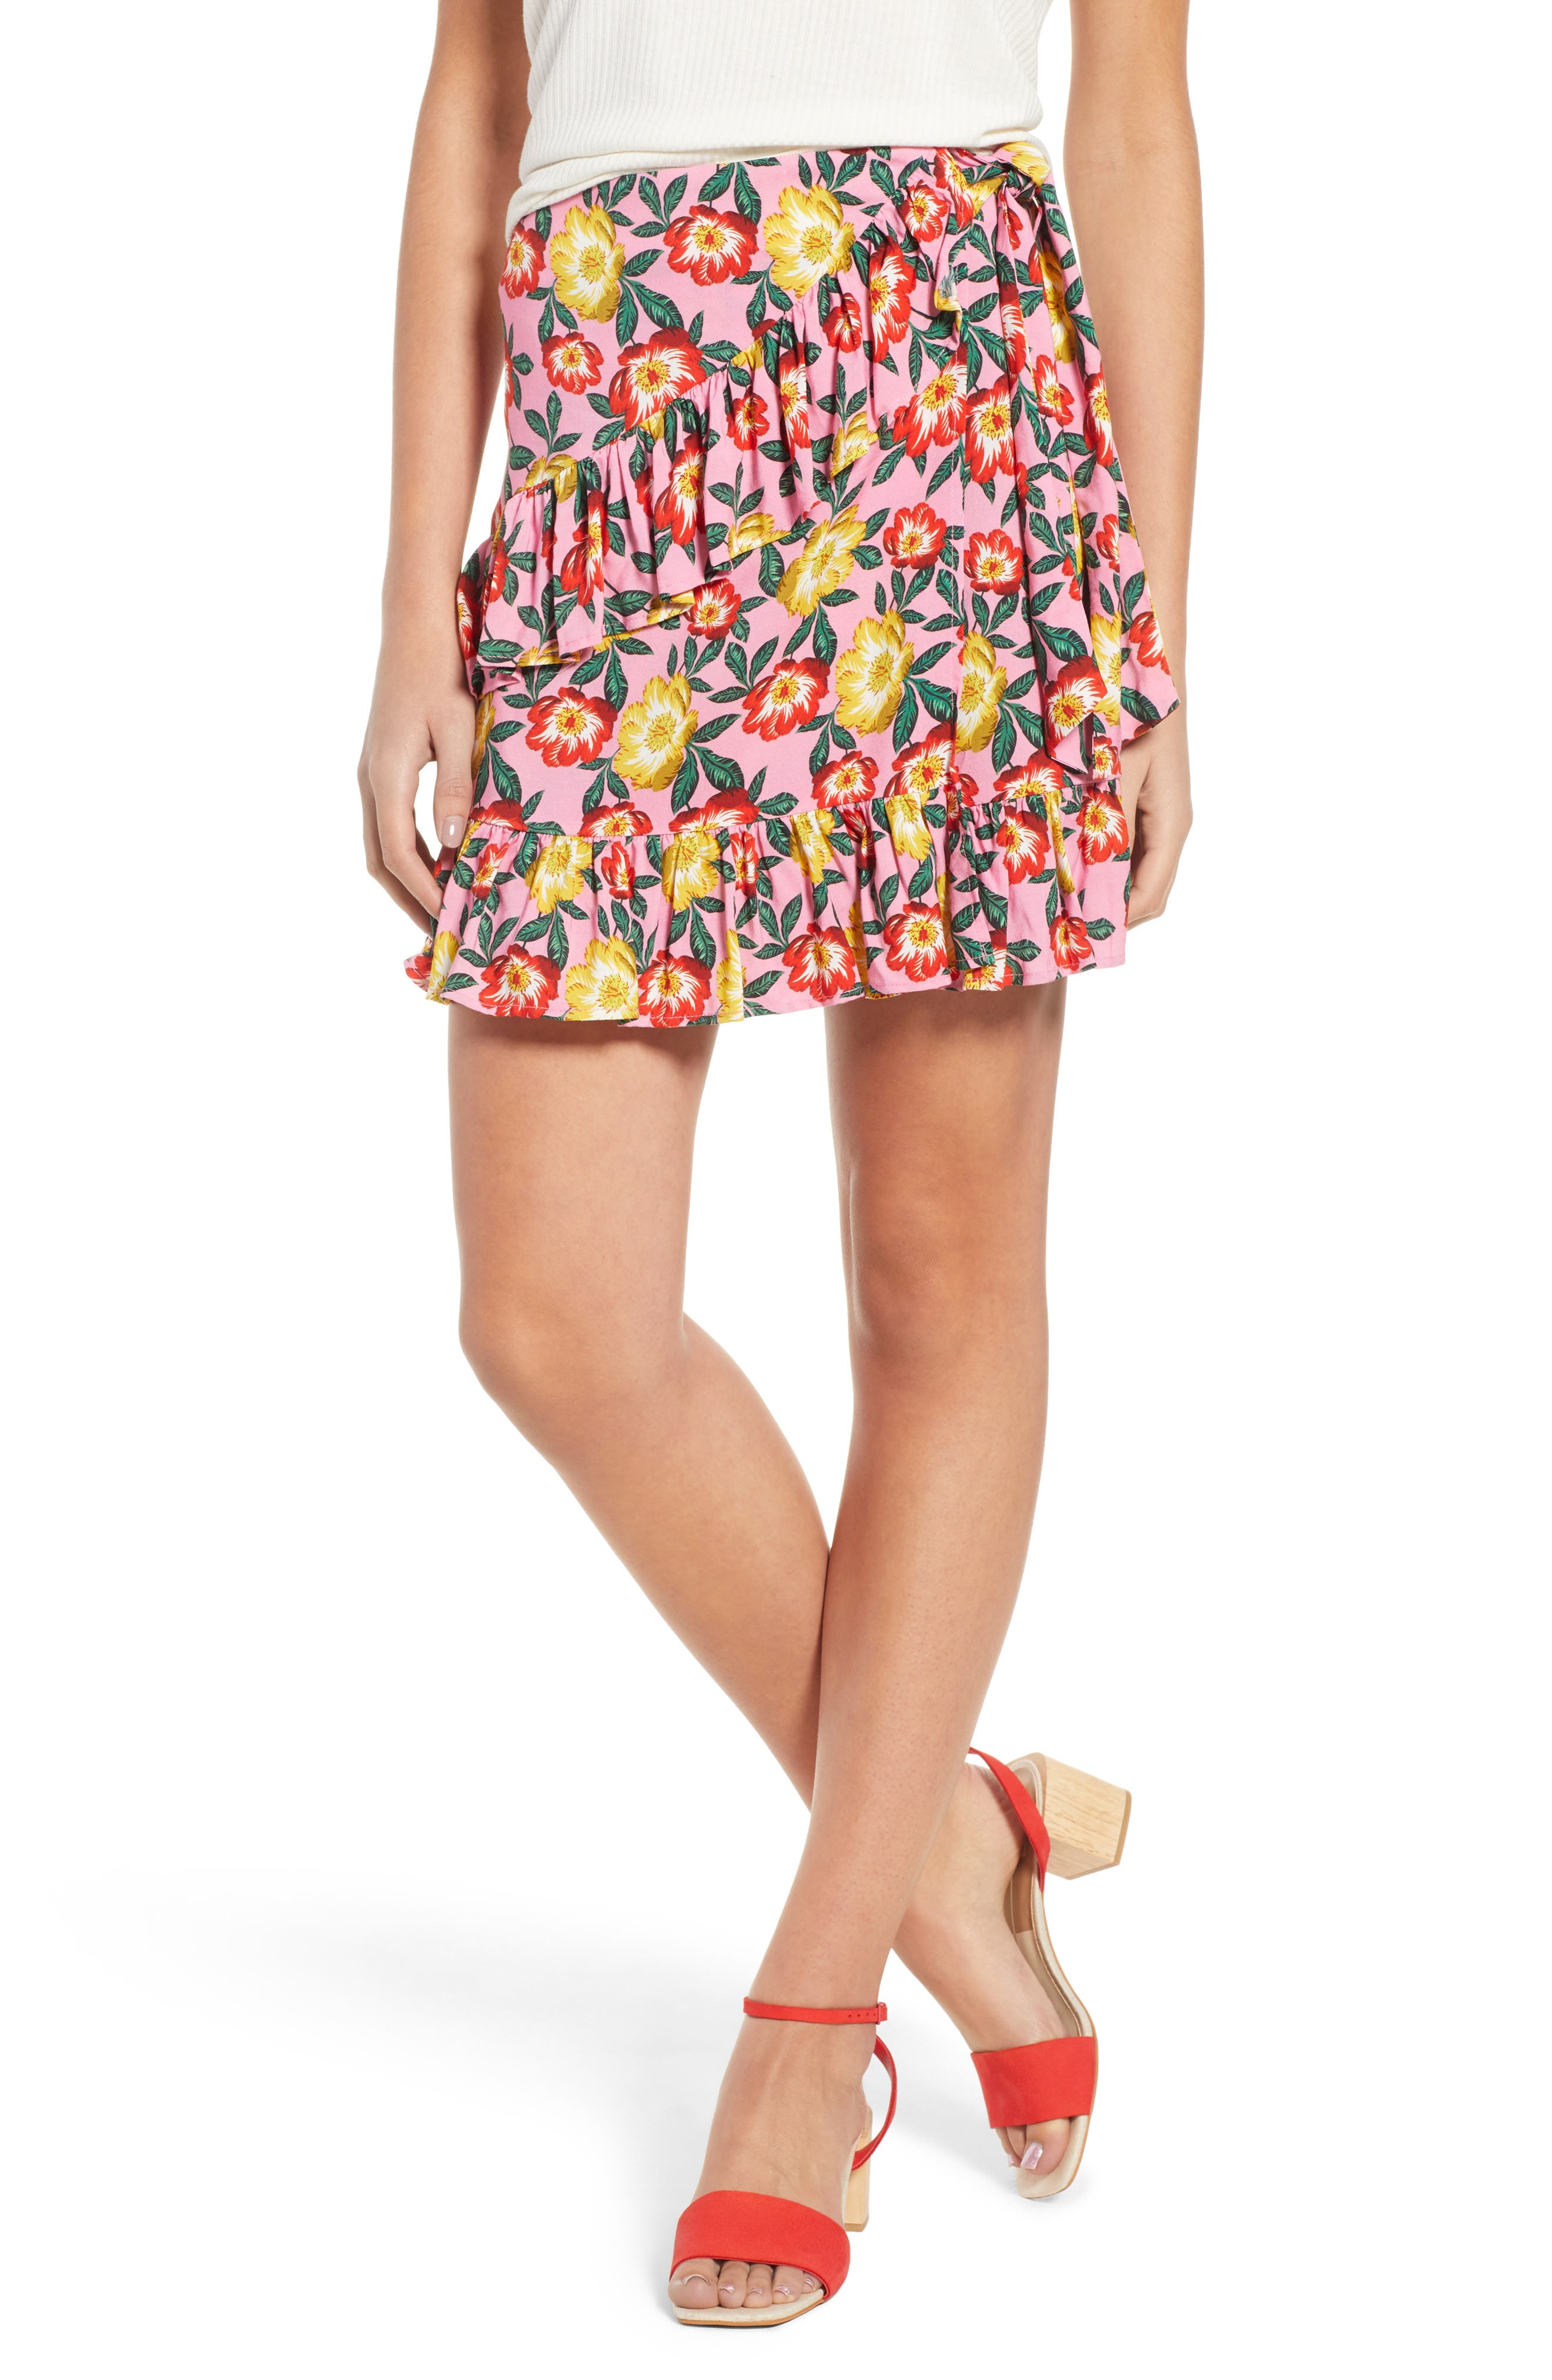 Reunion Floral Print Wrap Skirt,                         Main,                         color, Small Blossom Roselle